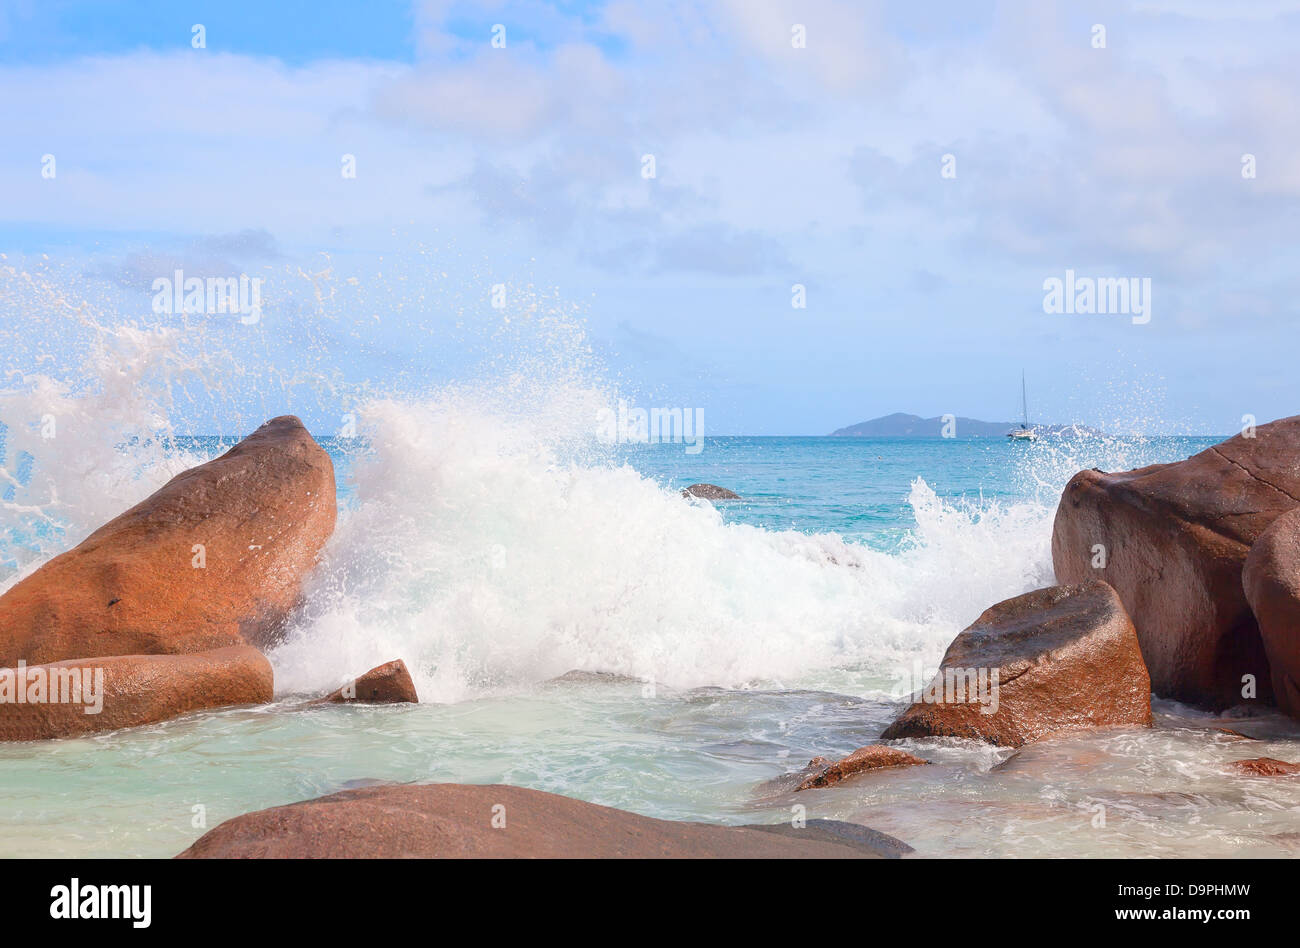 Waves in the Indian Ocean on the shores of Seychelles - Stock Image